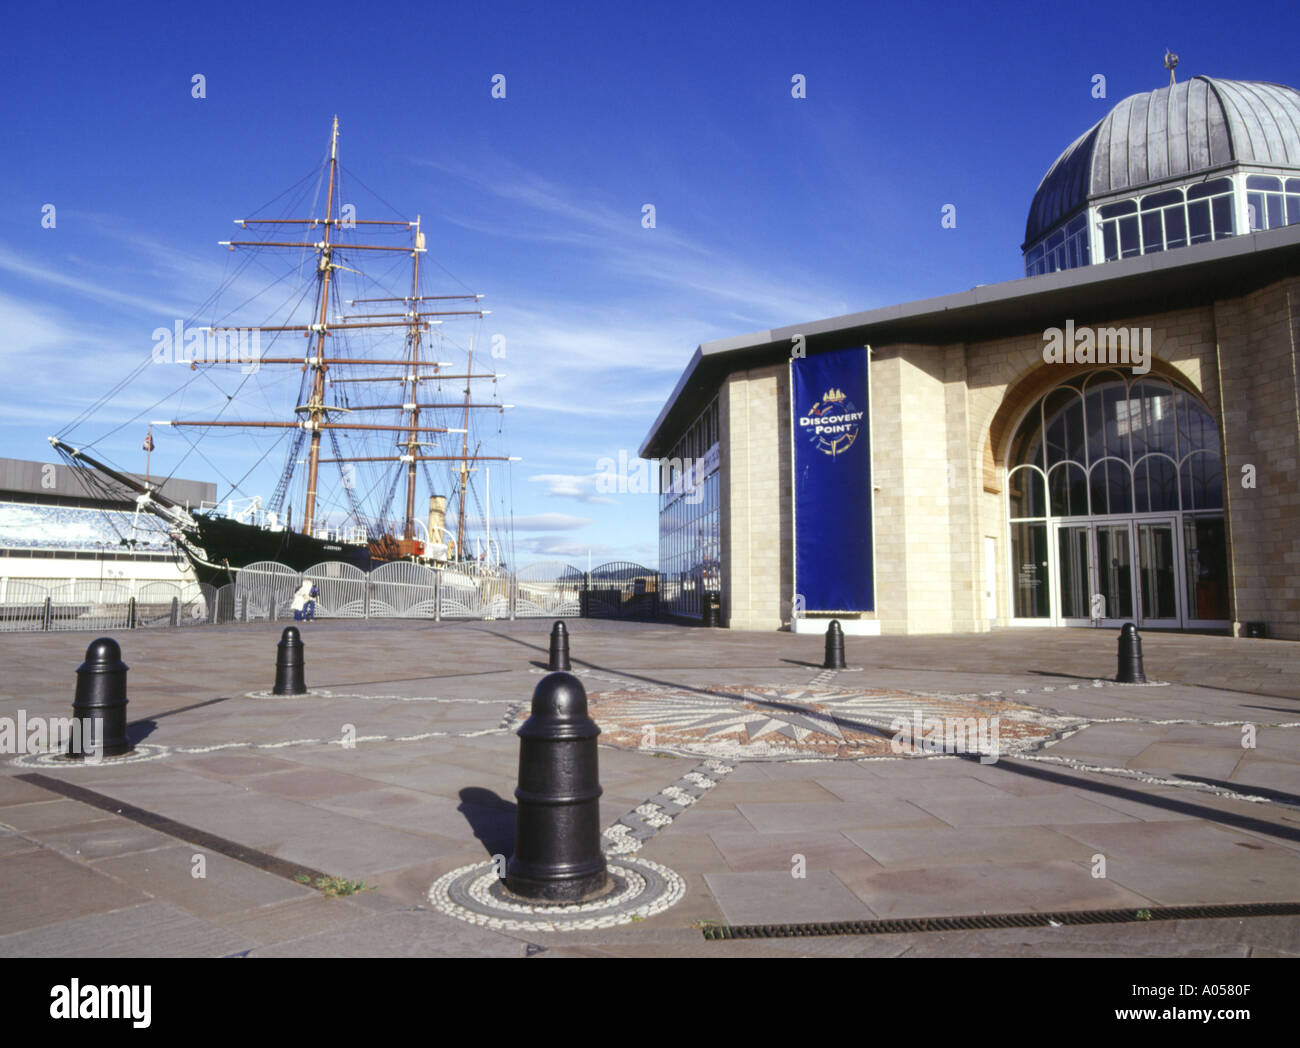 dh RRS Discovery DUNDEE ANGUS rrs discovery point capt scotts antarctica ship scott museum scotland - Stock Image